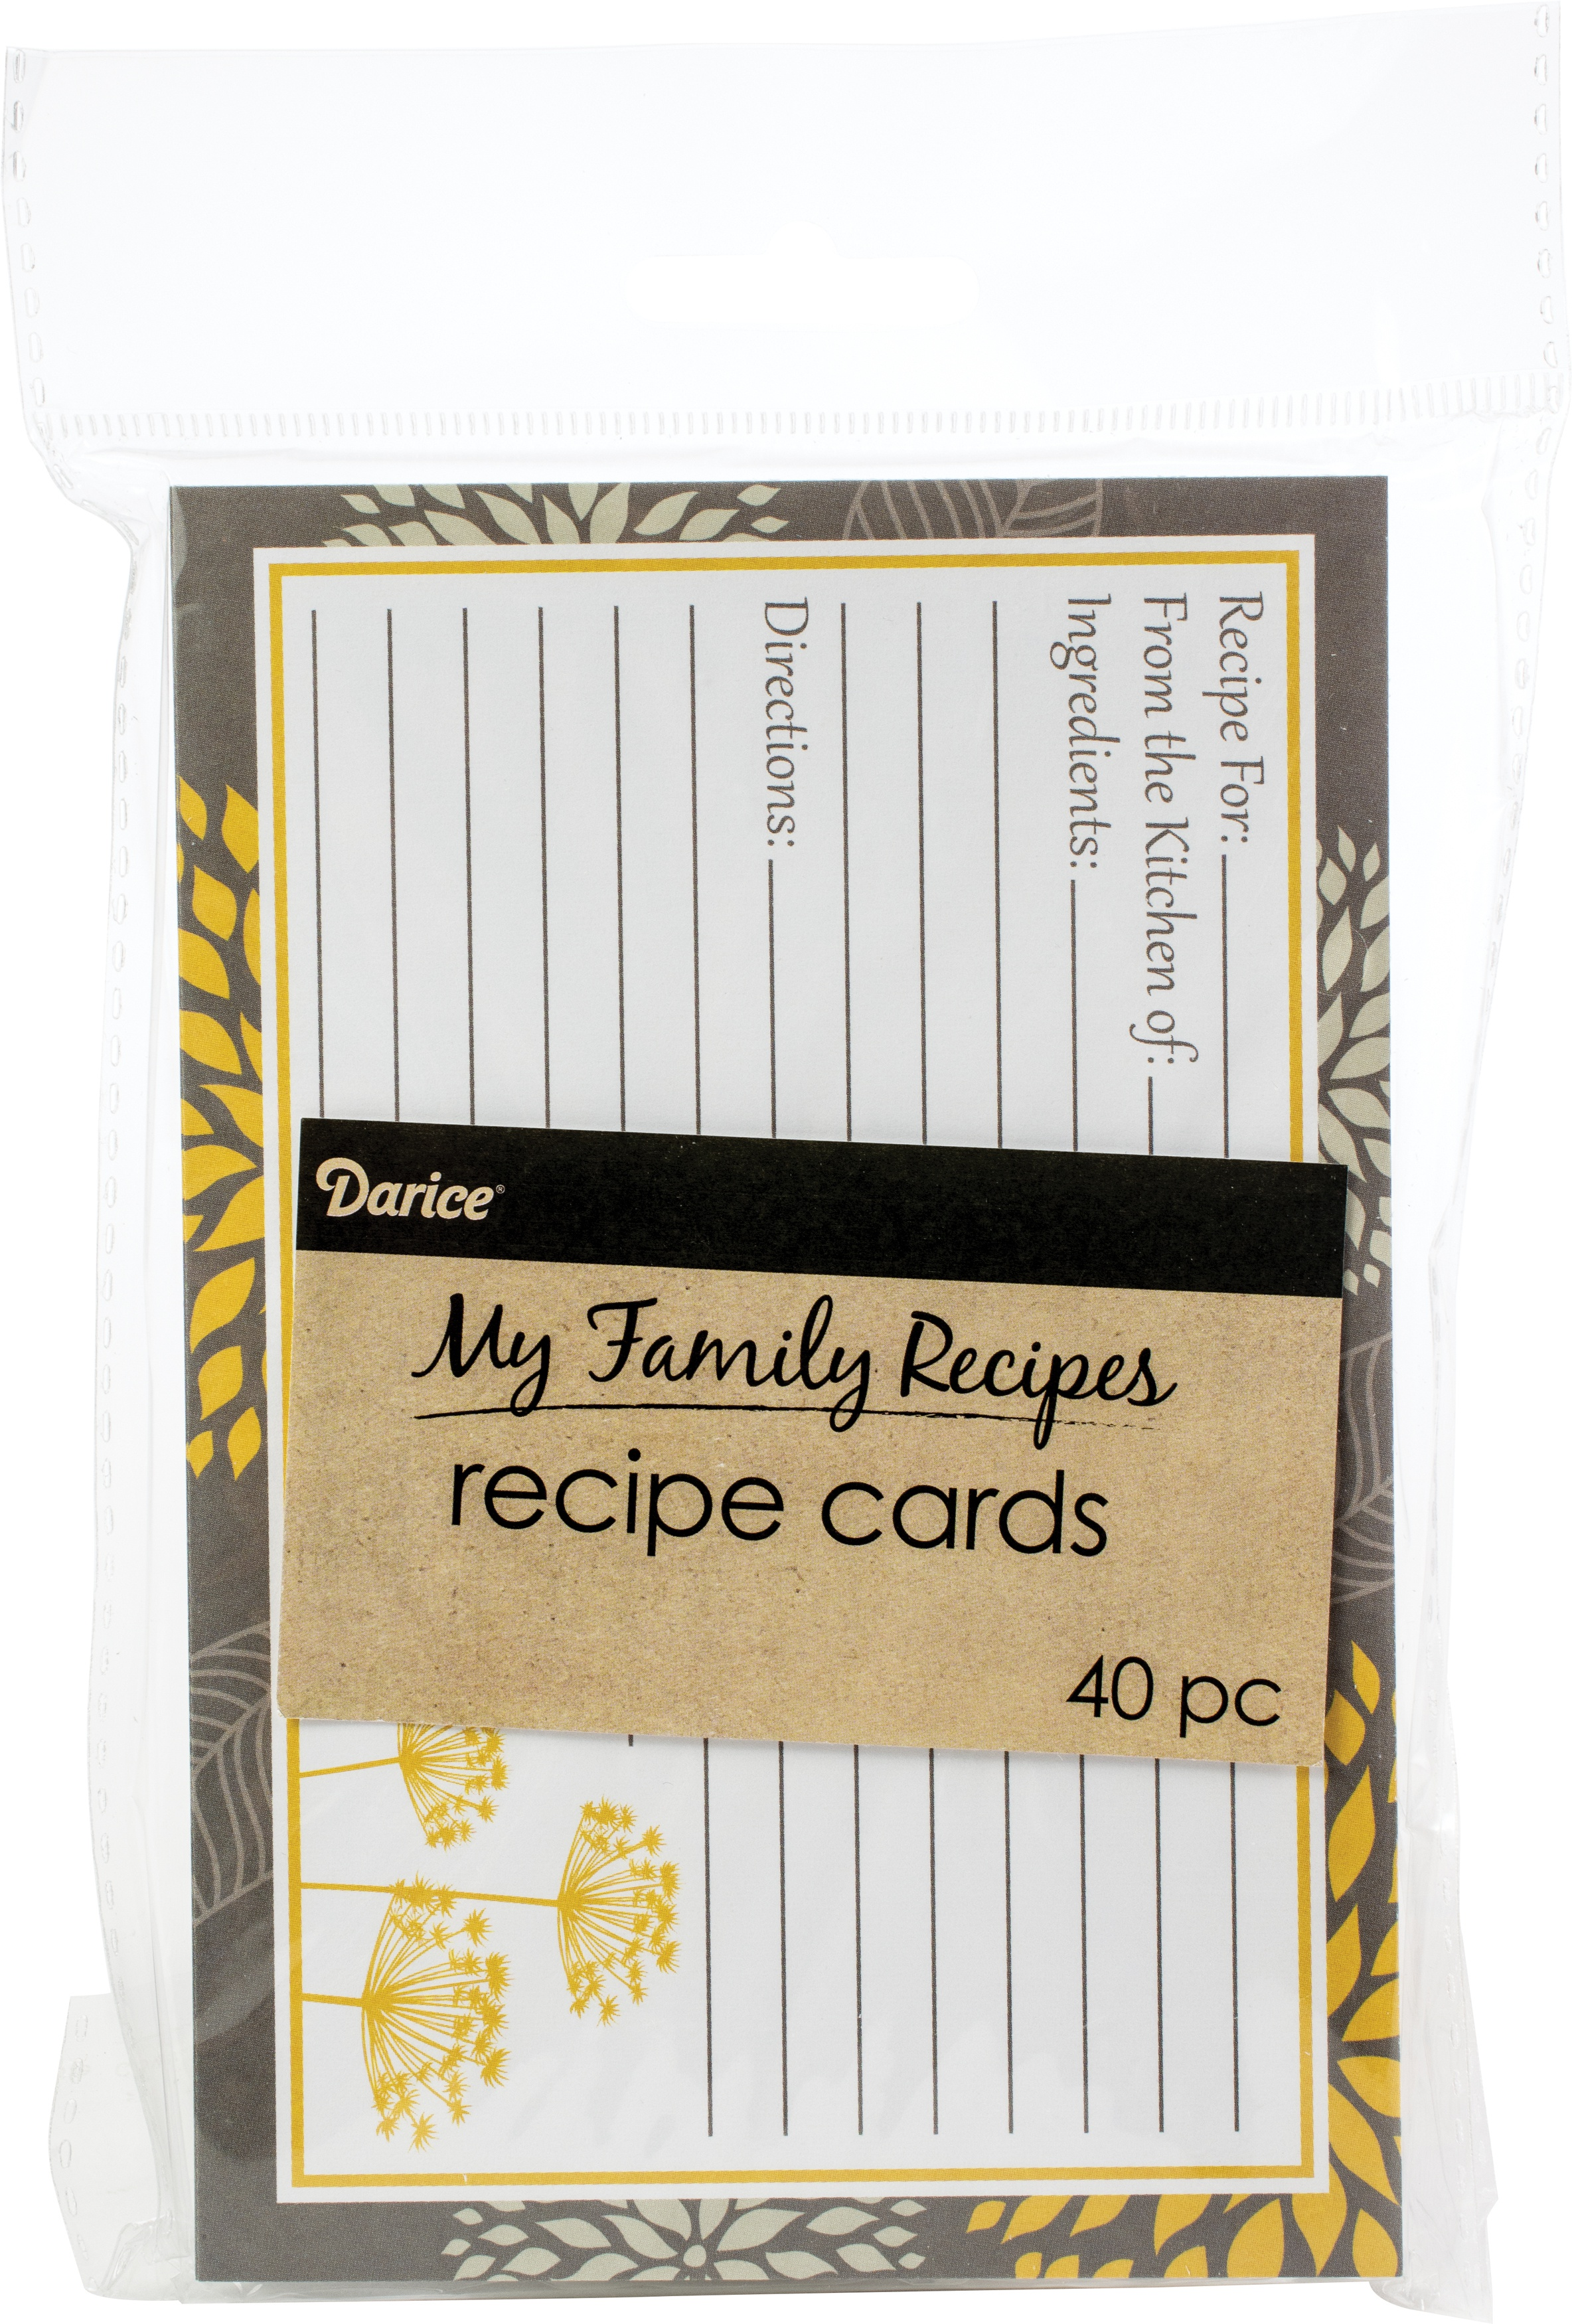 yellow and grey recipe cards